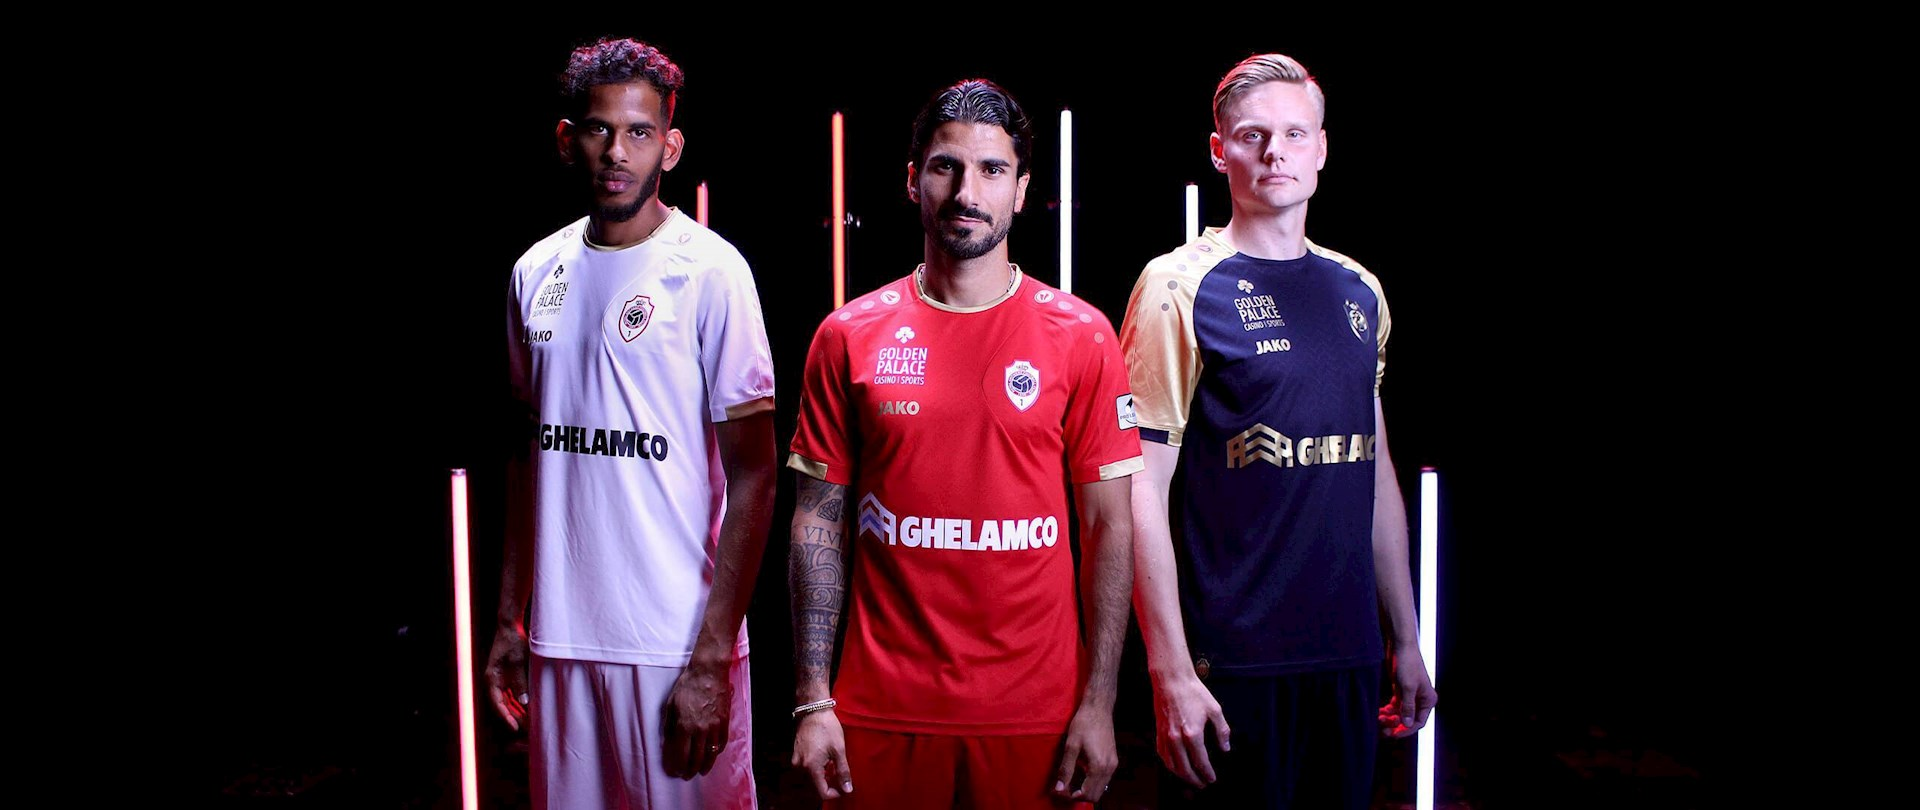 Start a free trial to watch royal antwerp f.c. Royal Antwerp FC voetbalshirts 2019-2020 - Voetbalshirts.com